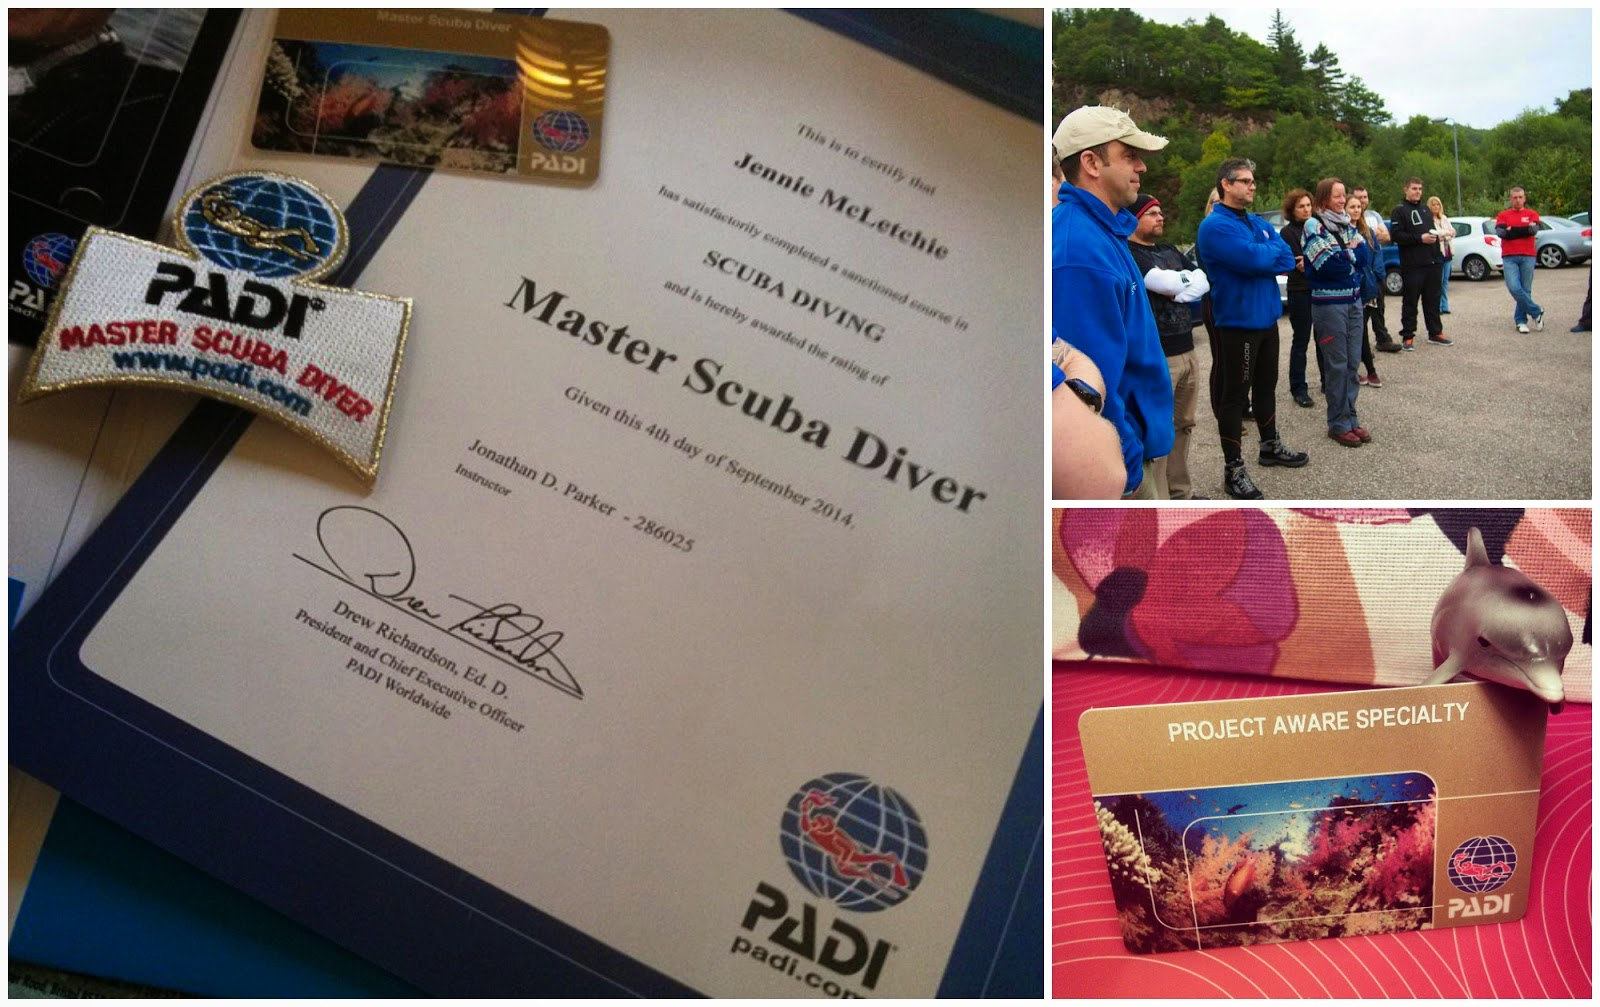 Frocktasia the padi master scuba diver is the highest non professional certification level in the padi system of diver education it has been so much fun getting to xflitez Gallery